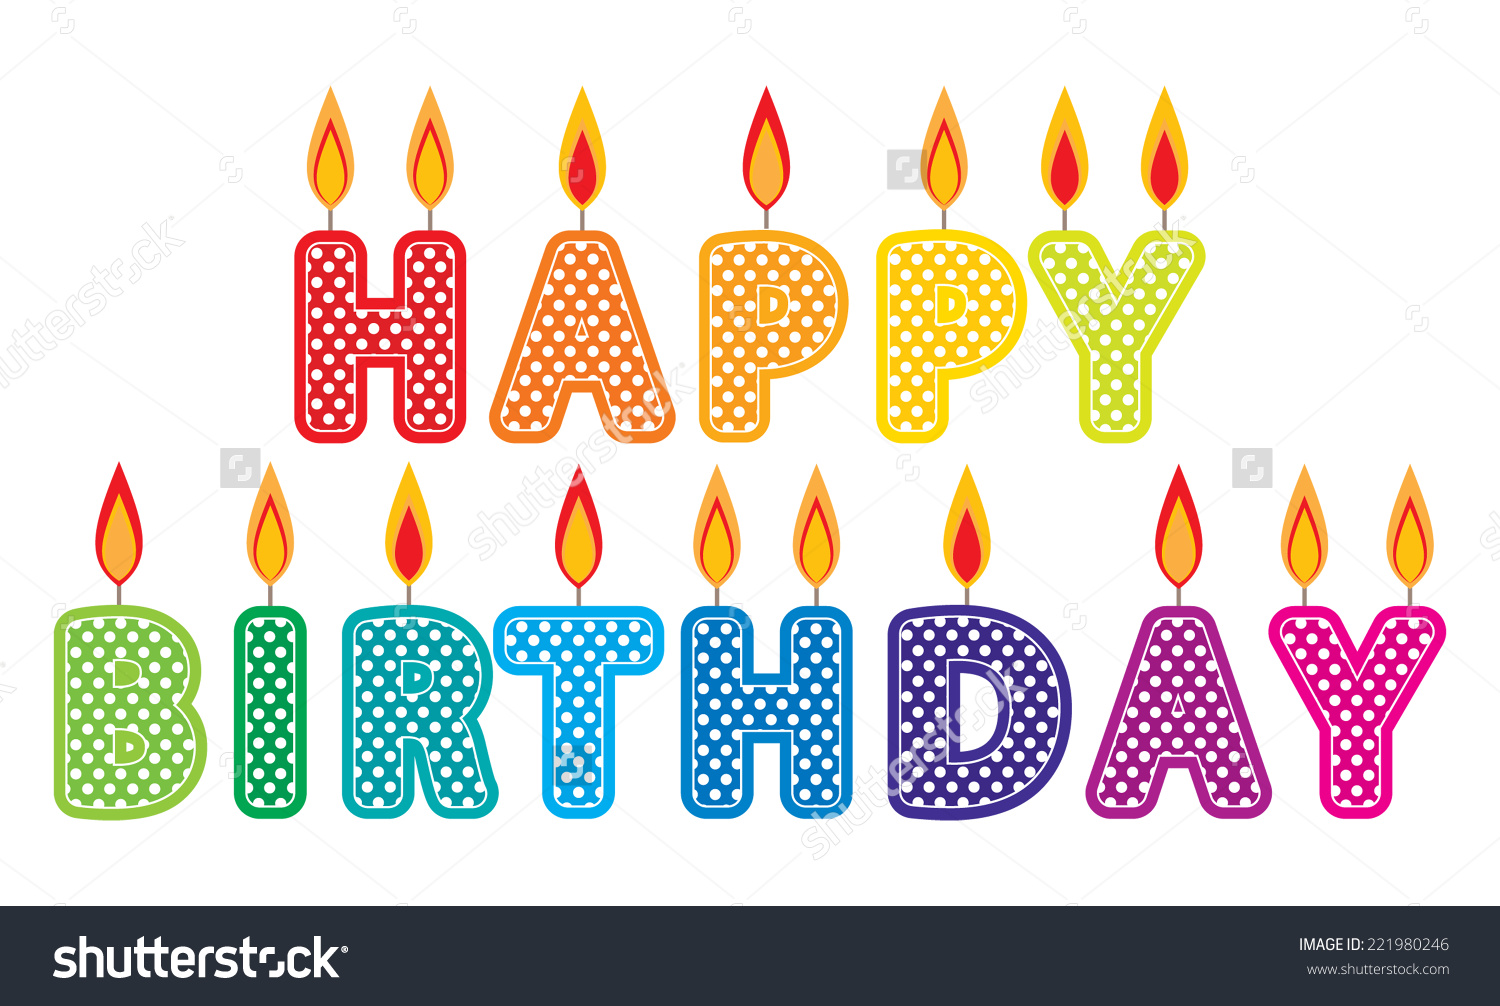 Happy Birthday Candles Clip Art Set. Col-Happy Birthday Candles Clip Art Set. Colorful Birthday cake candles graphics created using vector software-11